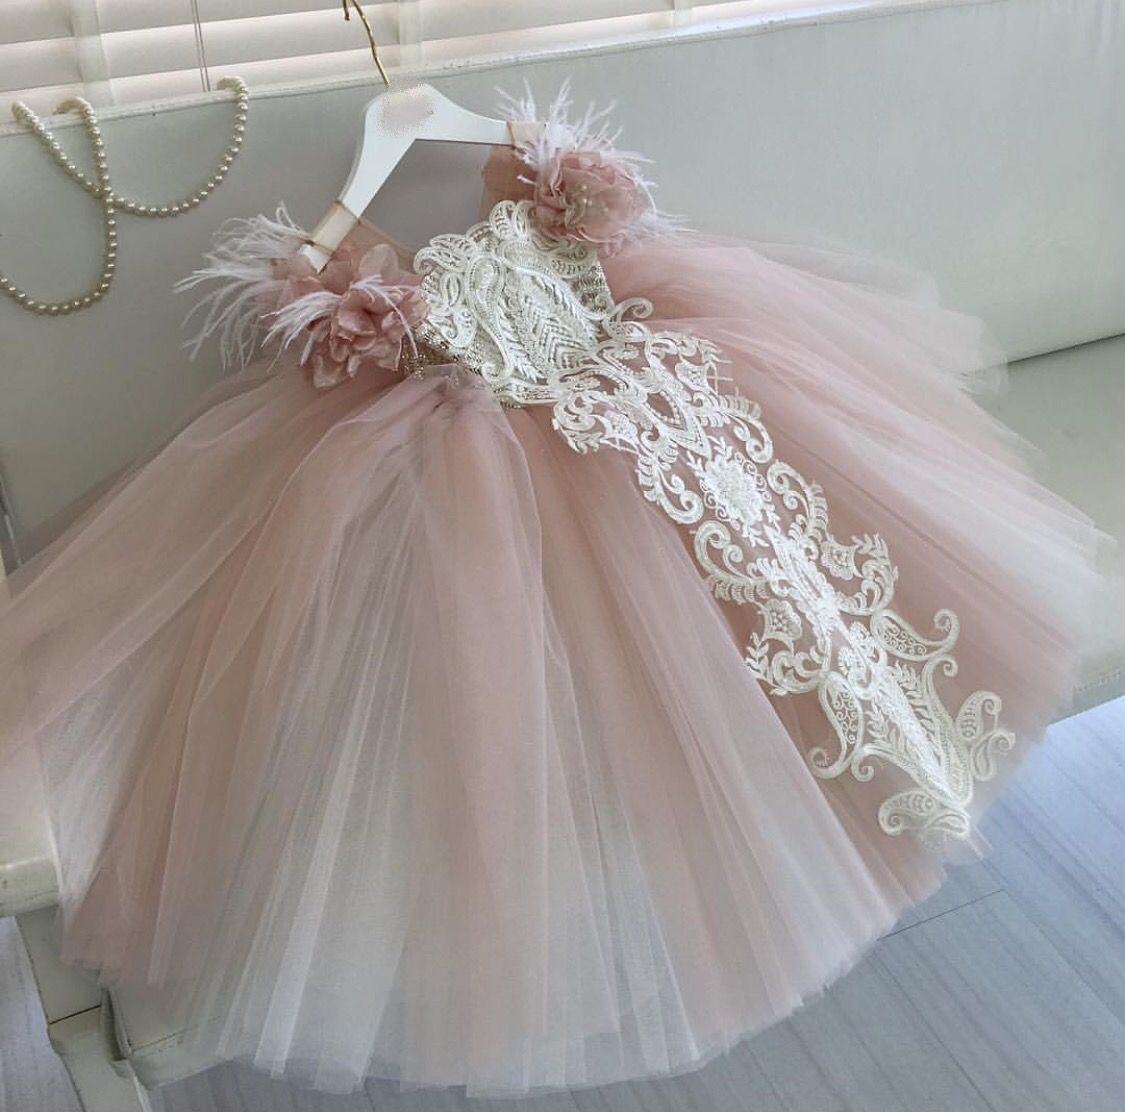 Blush Embroidered Kids Couture Luxury Gown Vestidos Infantis